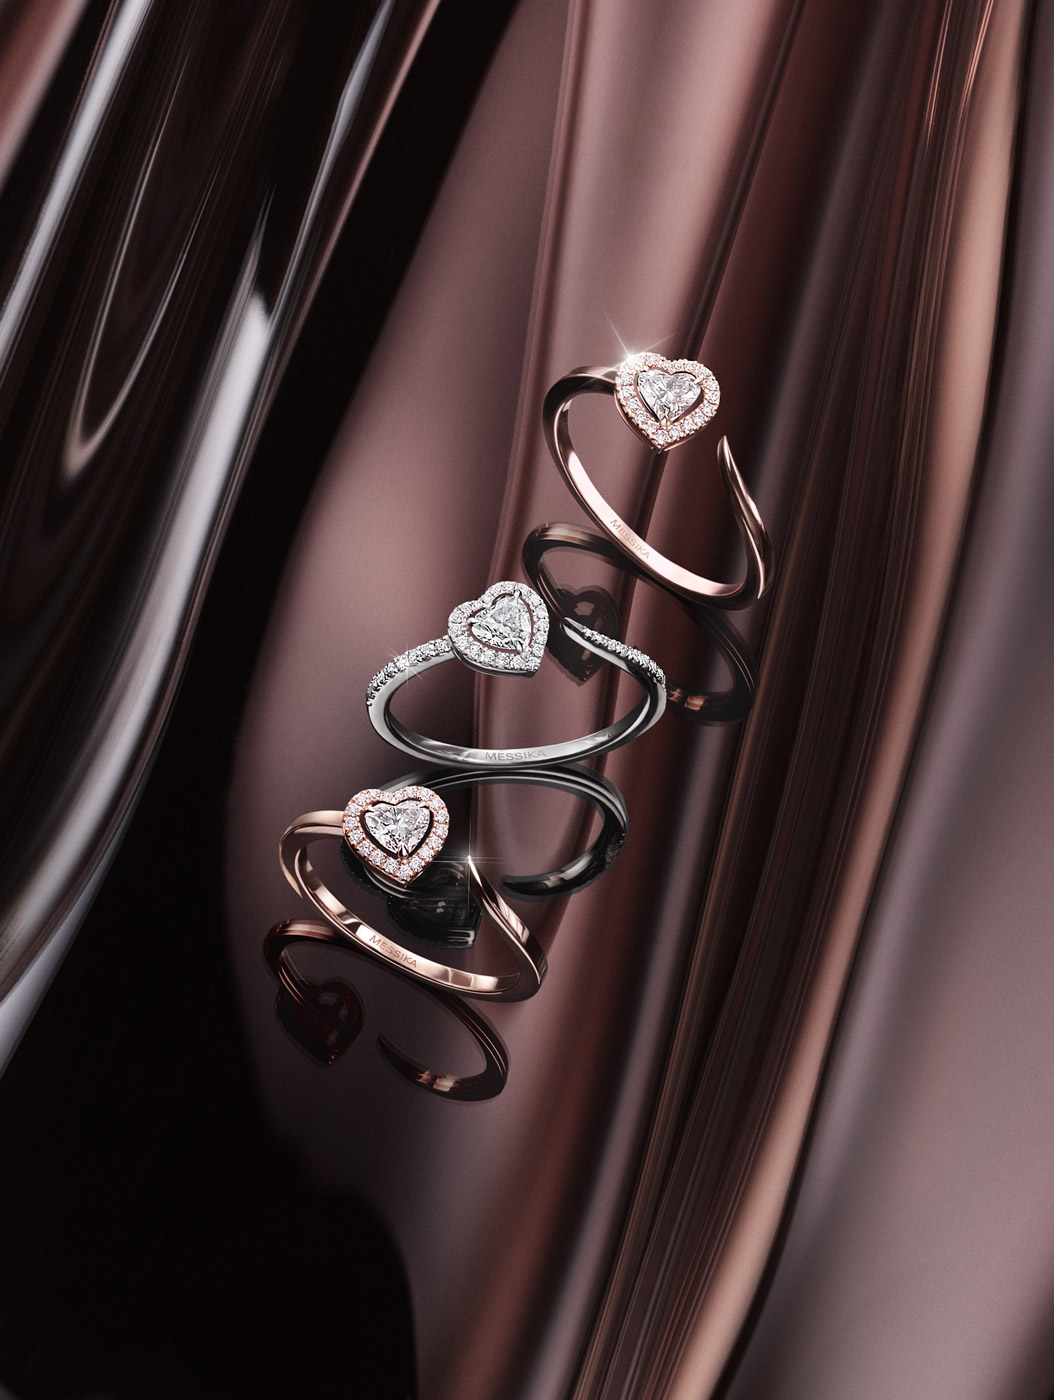 Diamond jewelry collection Joy Coeur - Messika women jewelry